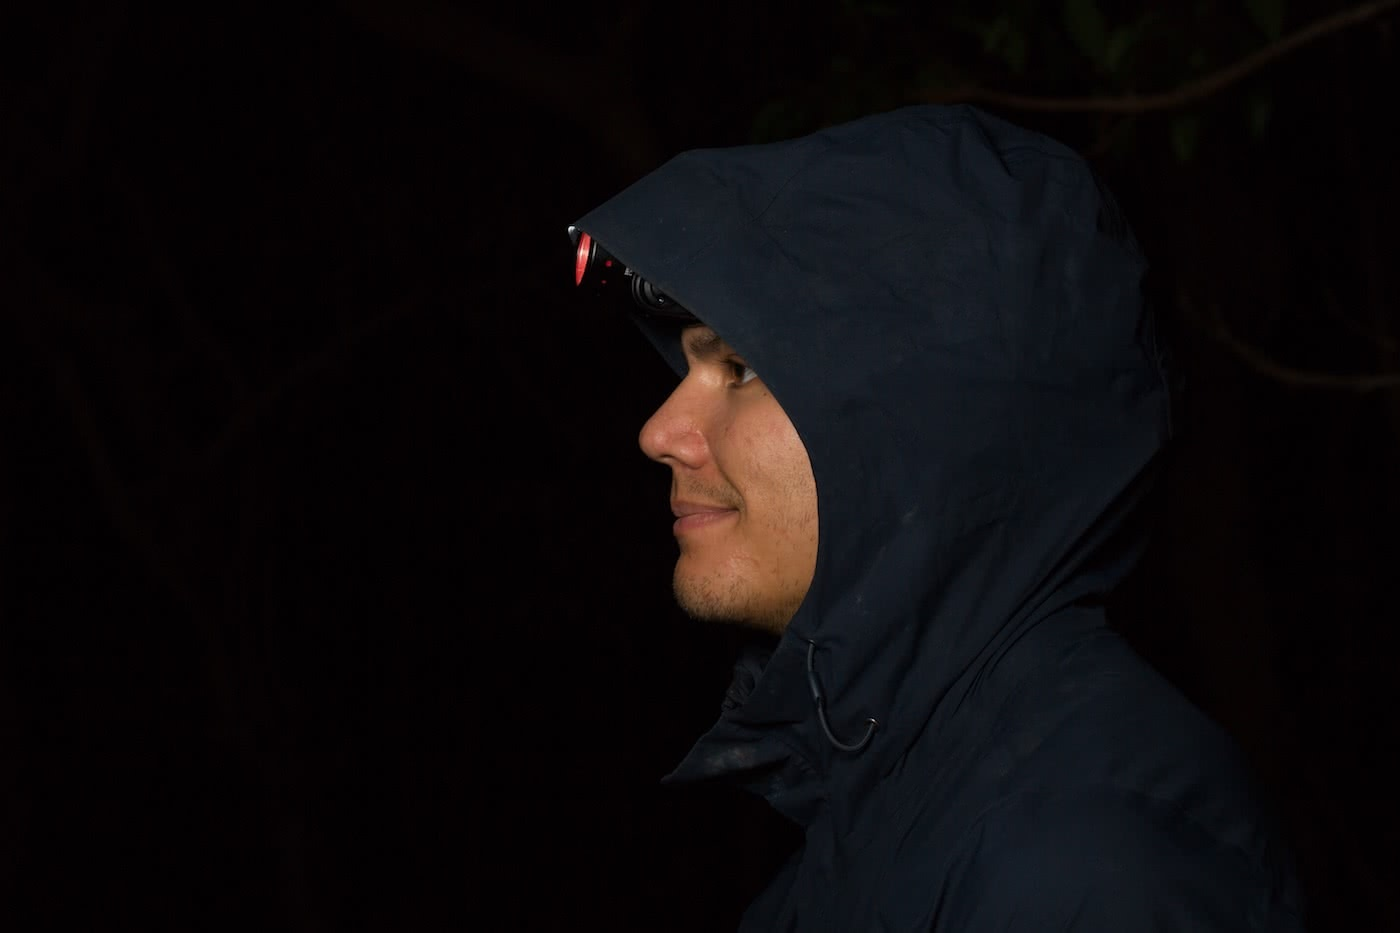 The North Face Dryzzle Jacket // Gear Review, Jannico Kelk, headtorch, dry, hood,, profile, black, dark, night